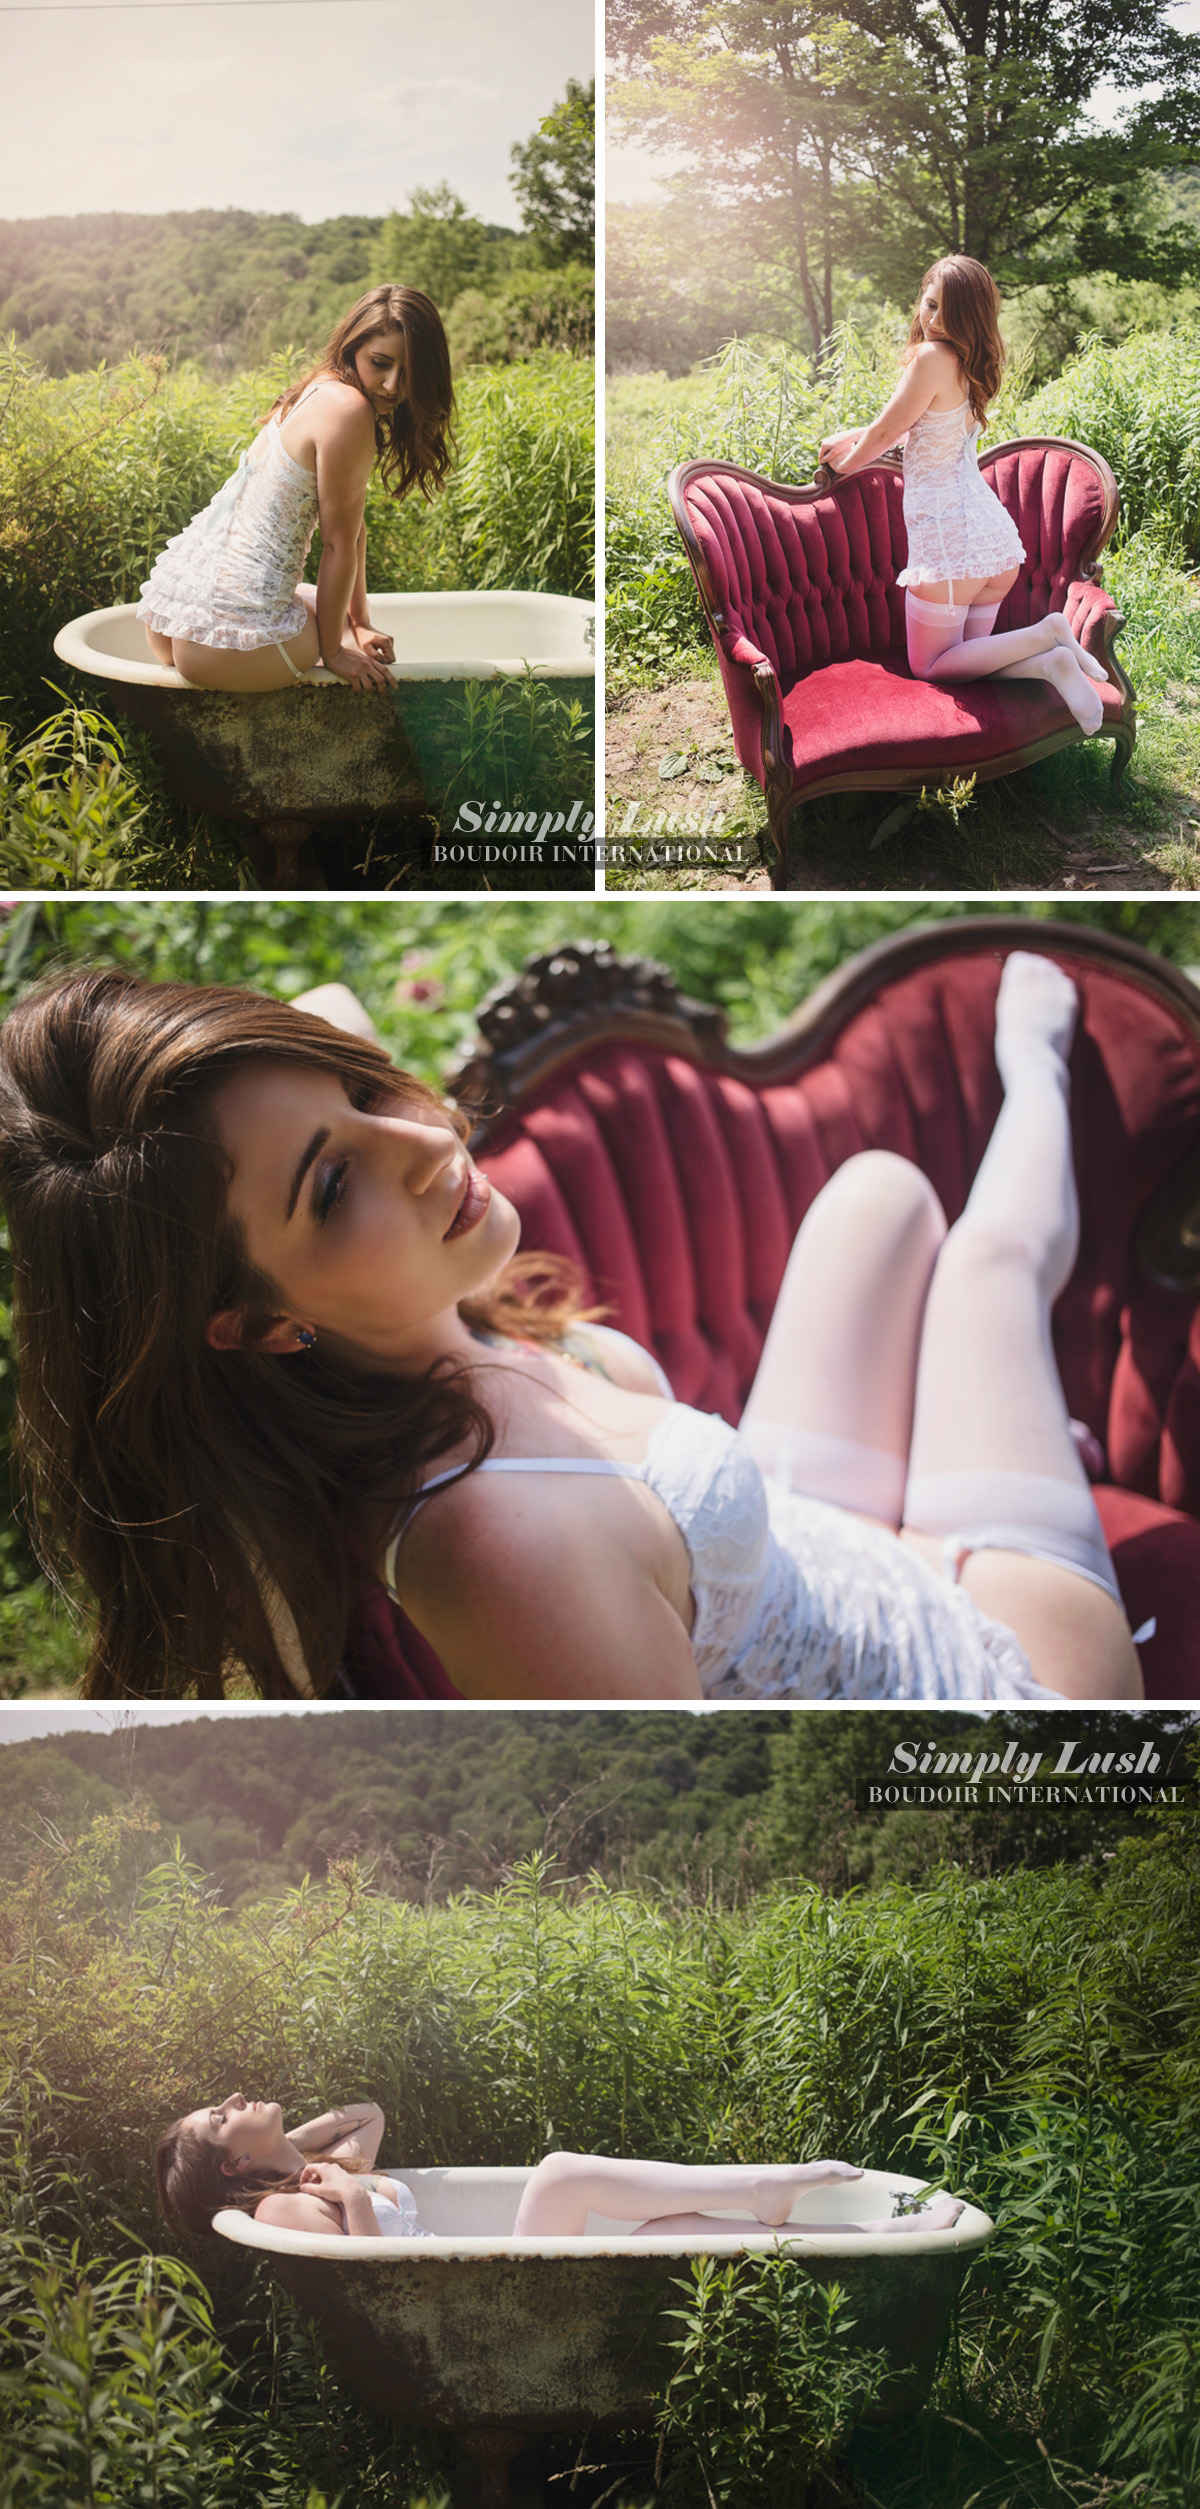 Simply Lush for Boudoir International 2 copy